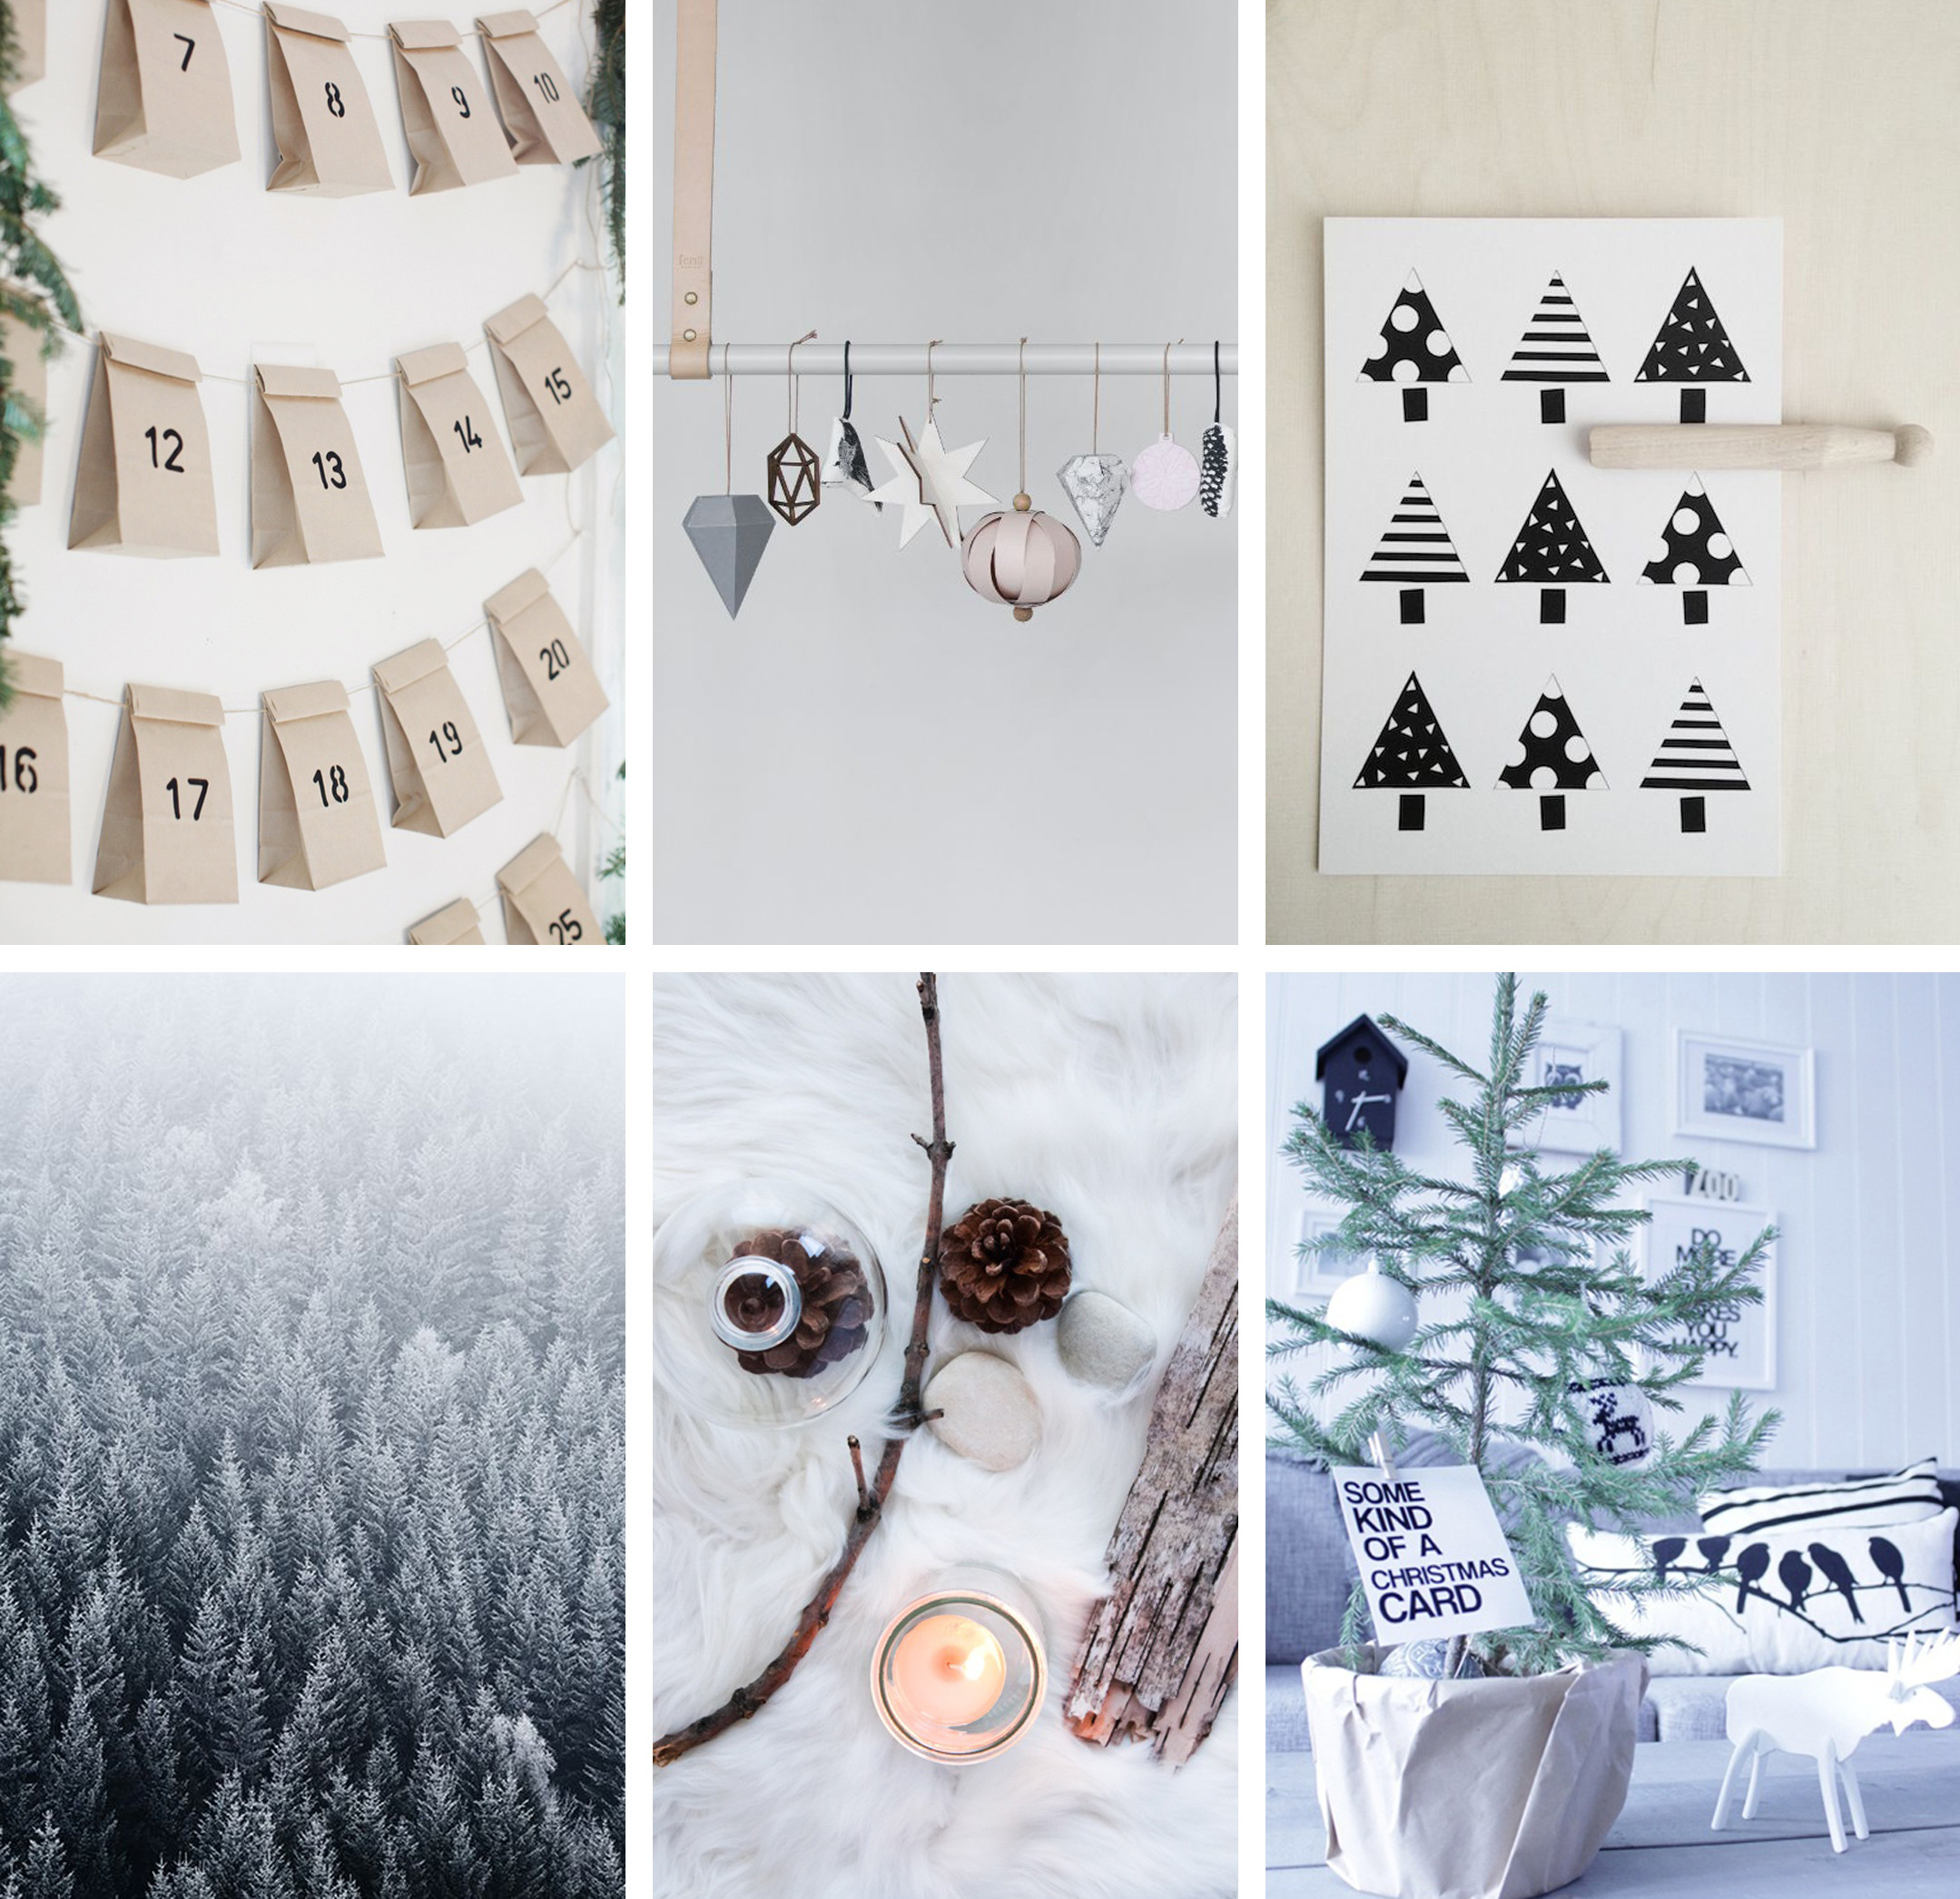 Best ideas about Pinterest Christmas DIY . Save or Pin christmas decoration inspiration diy xmas t ideas Now.